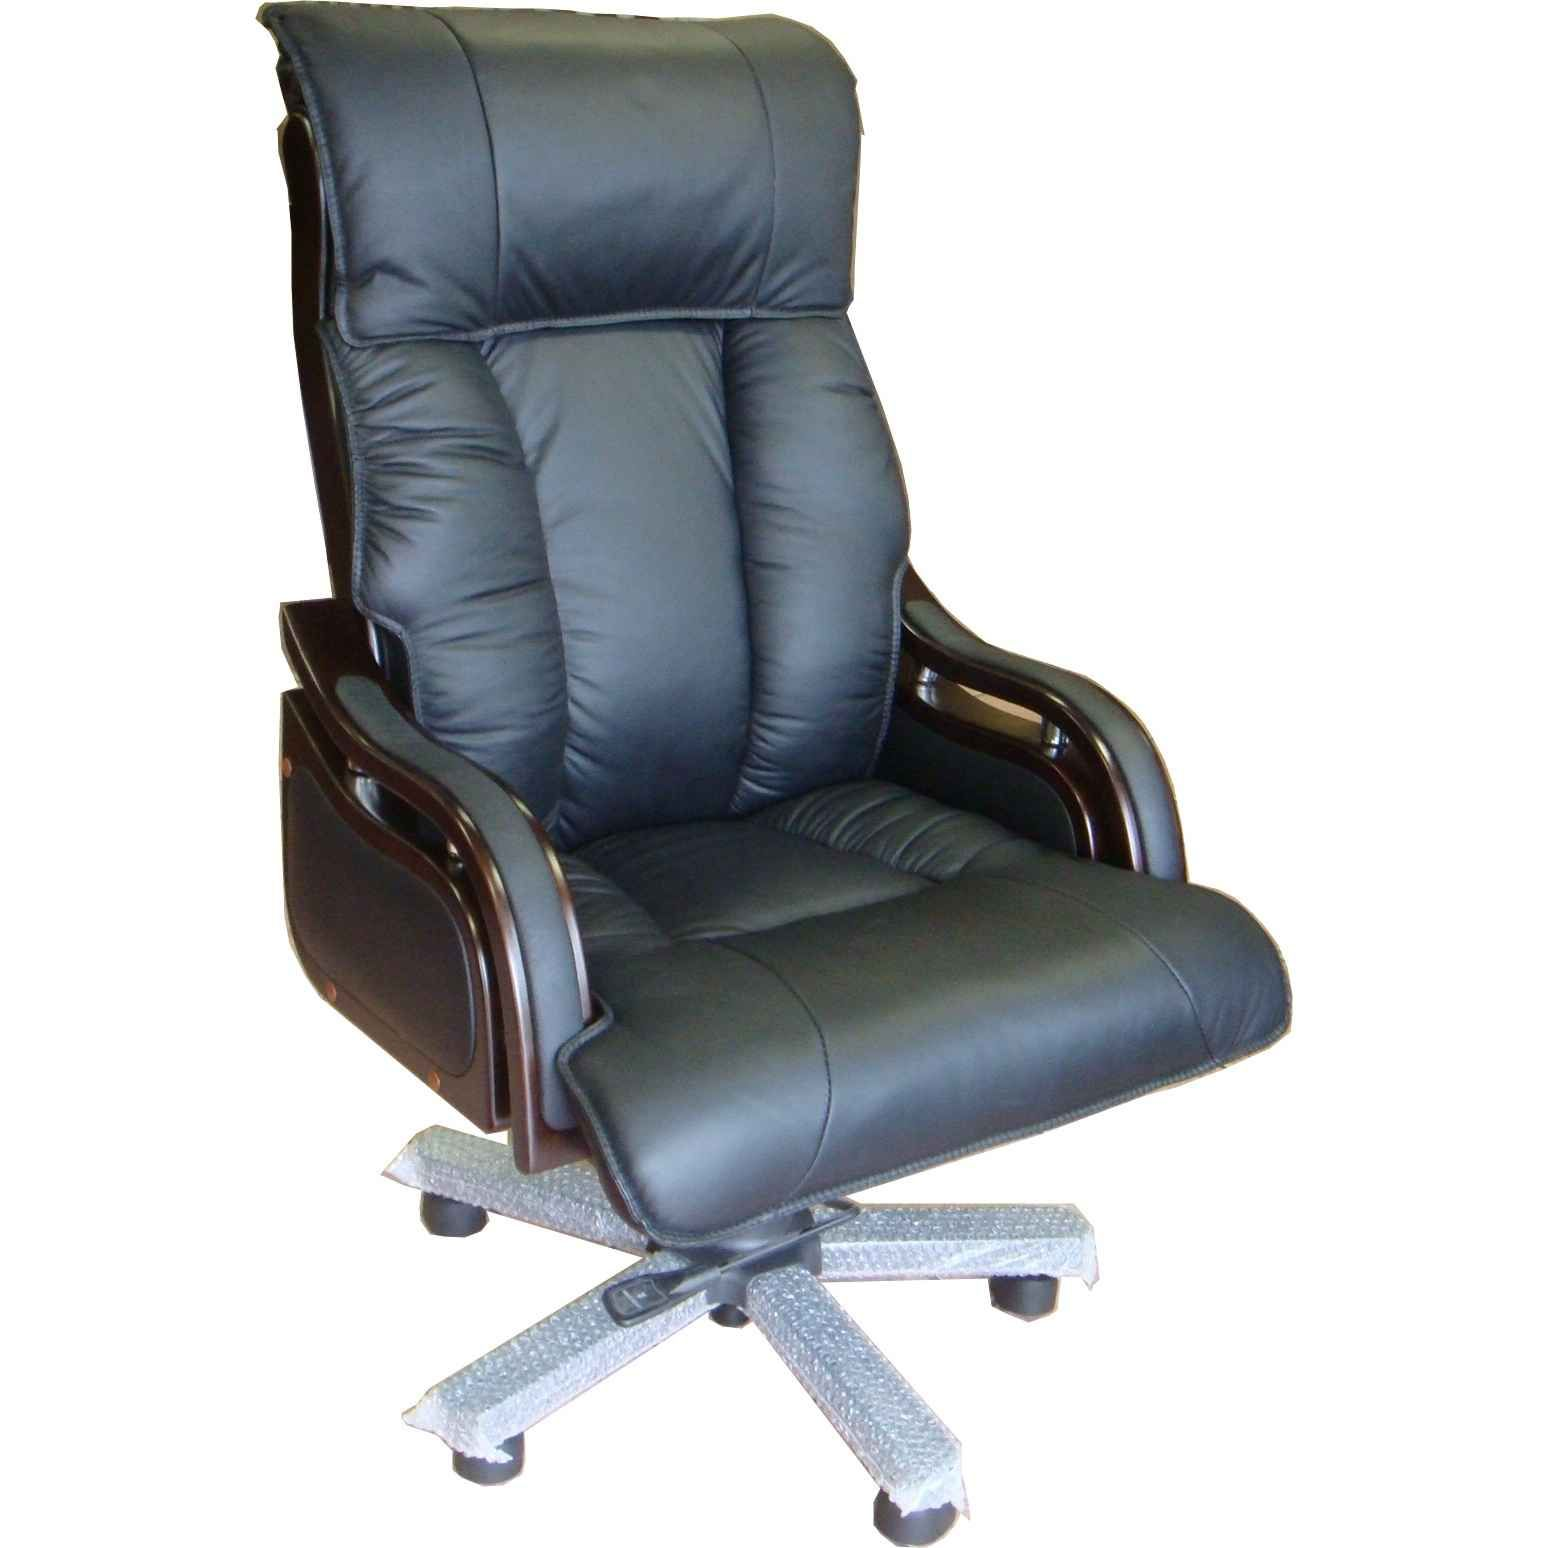 Executive High Back Black Leather Desk Chair Reclining Office Chair Office Chair Office Chair Design